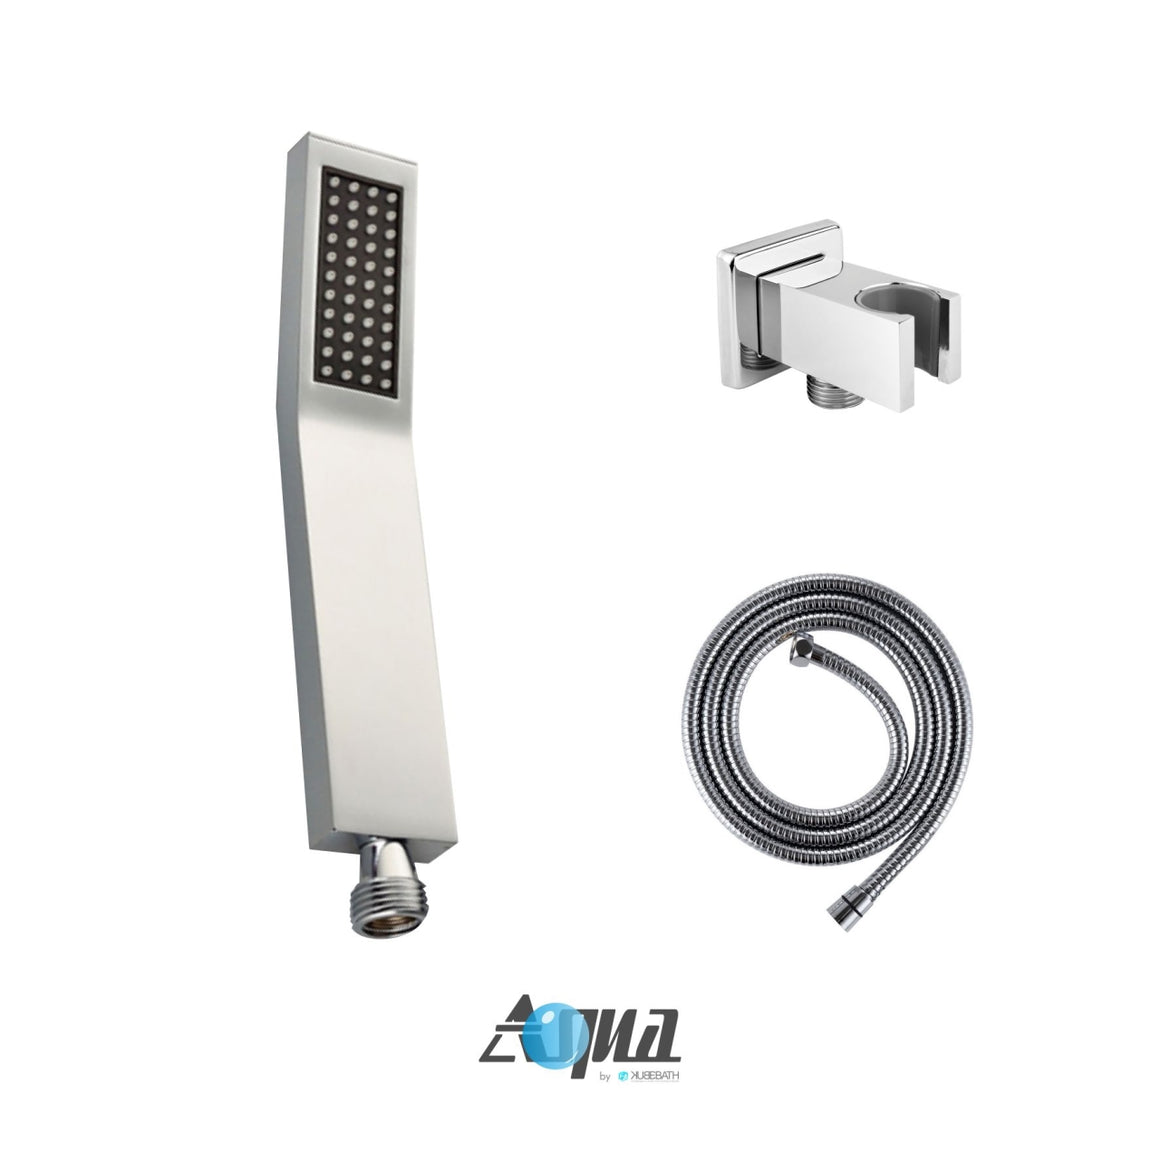 "Aqua Piazza Brass Shower Set with 12"" Ceiling Mount Square Rain Shower, Handheld and Tub Filler"